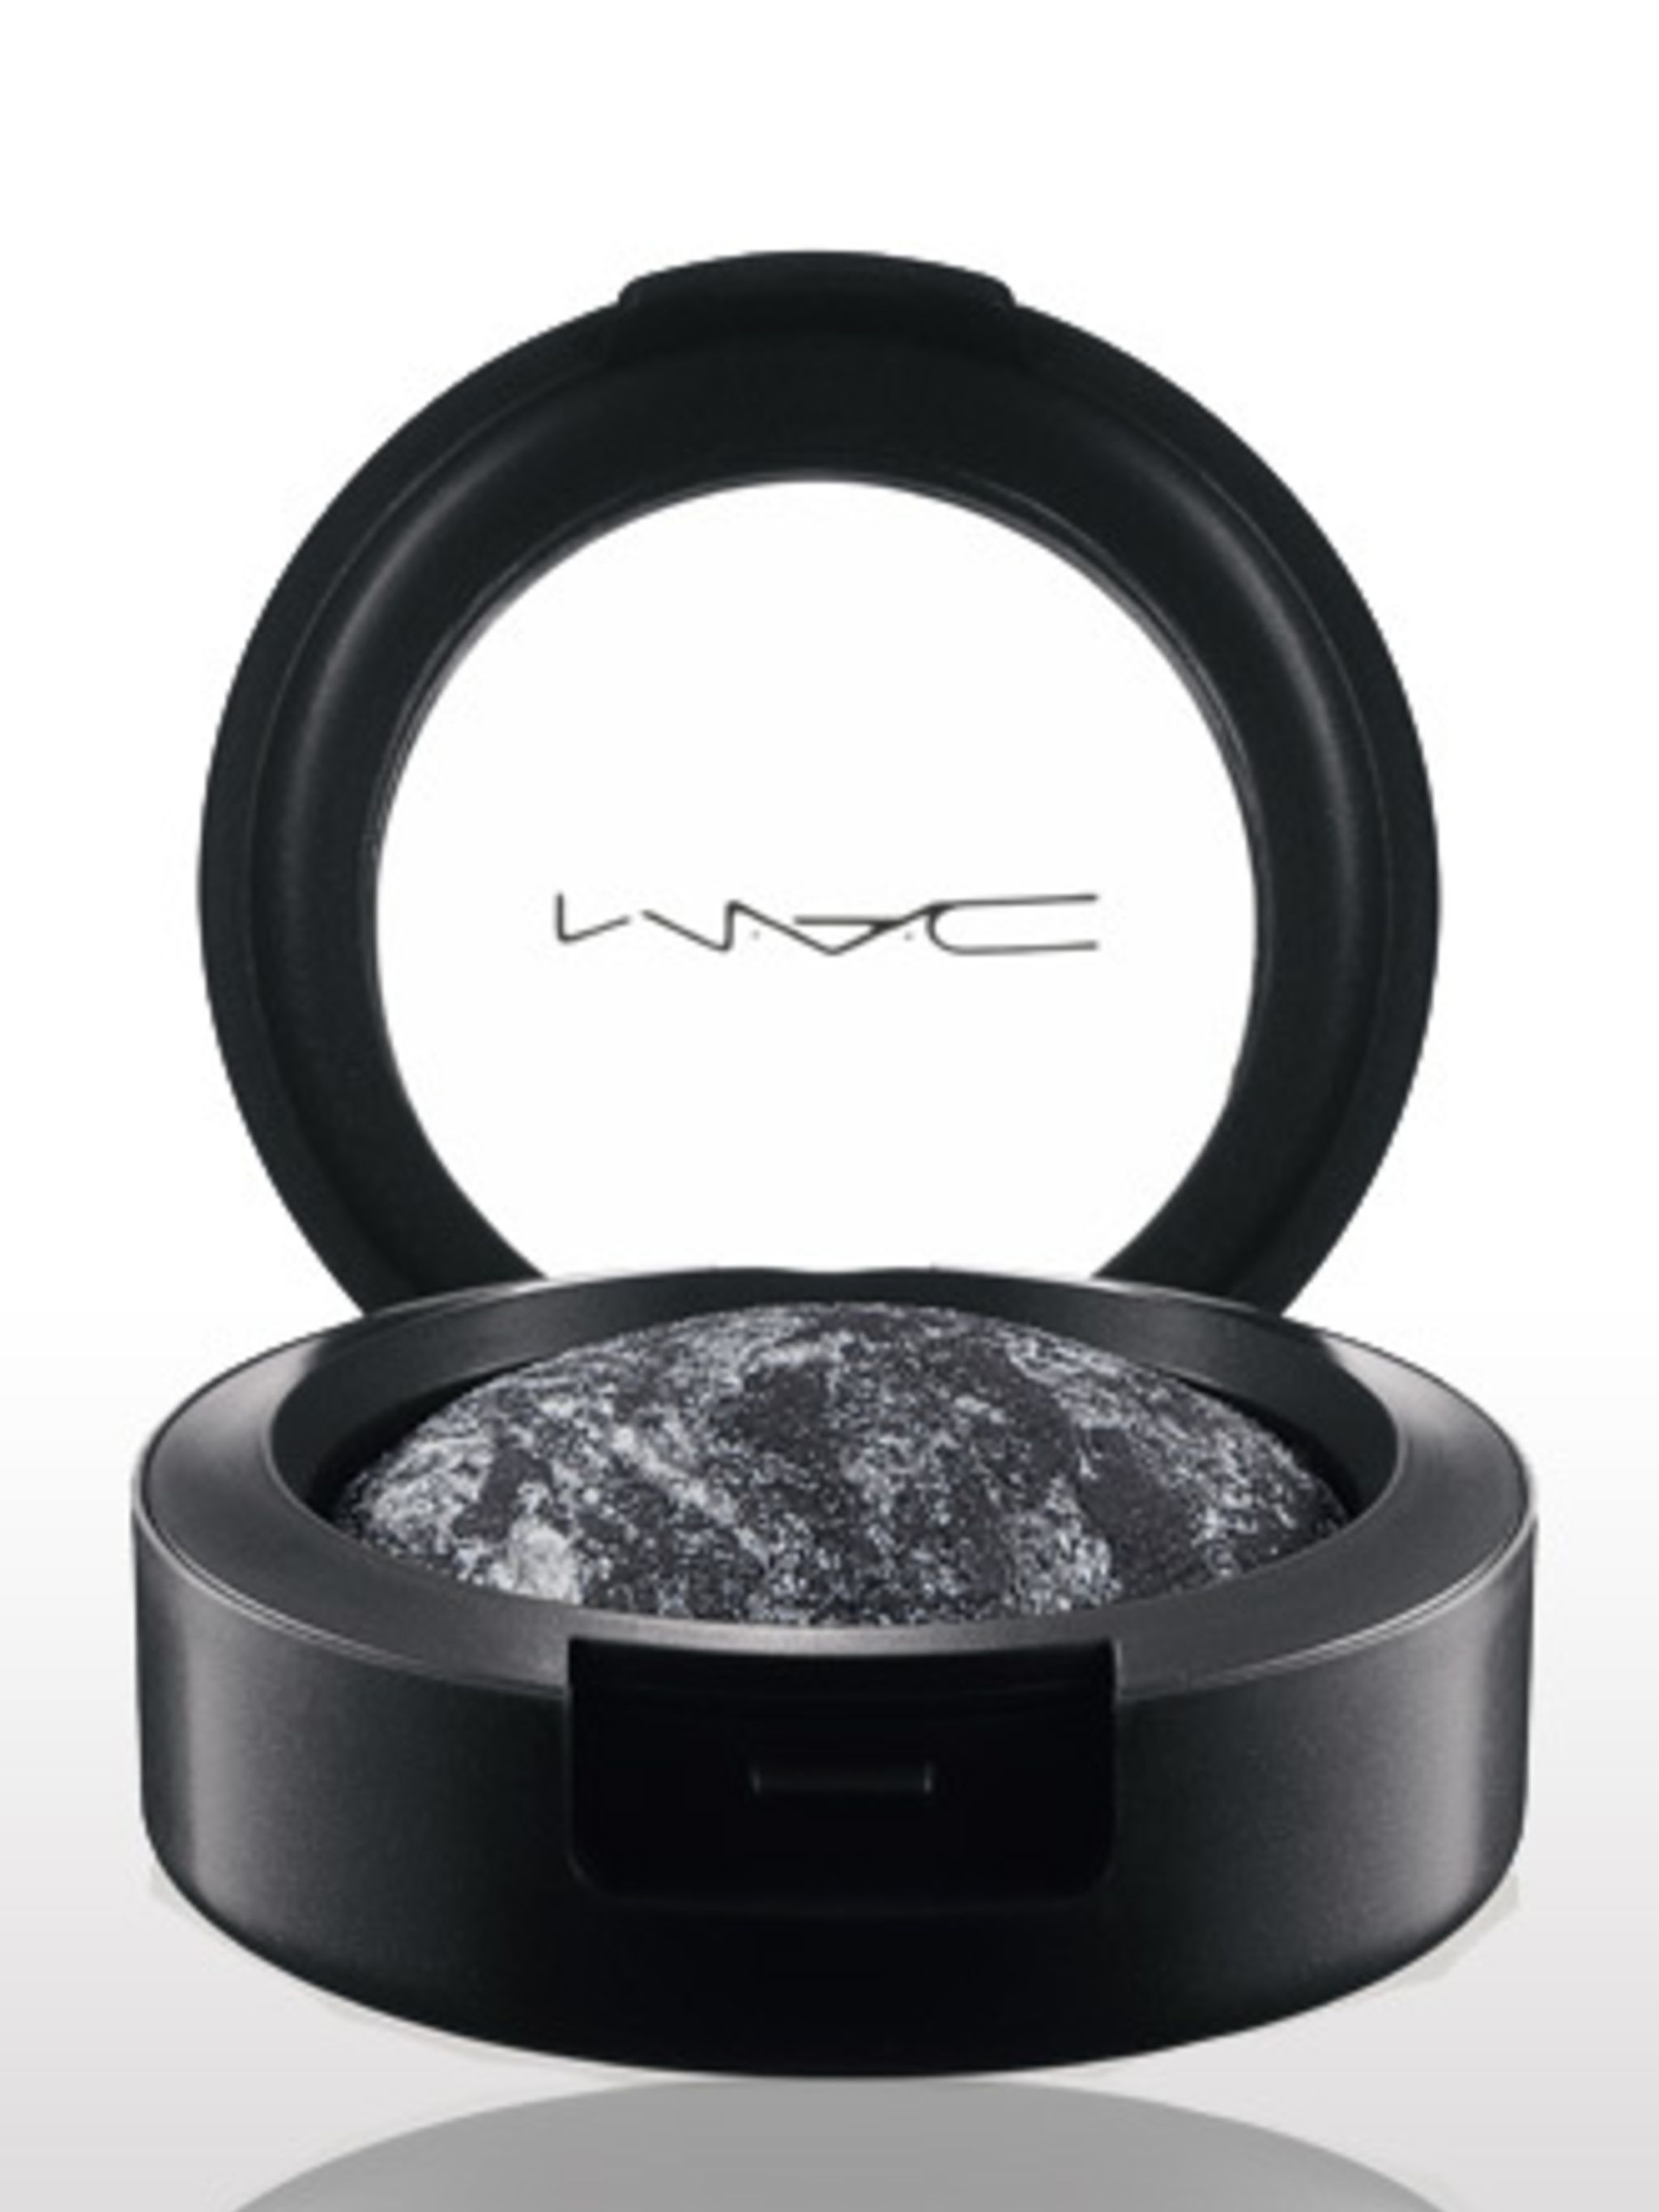 "<p>Style Black Mineralize Eye Shadow in Cinderfella, £15, by <a href=""http://www.maccosmetics.co.uk/product/spp.tmpl?CATEGORY_ID=CAT21850&PRODUCT_ID=PROD71028"">MAC</a></p>"